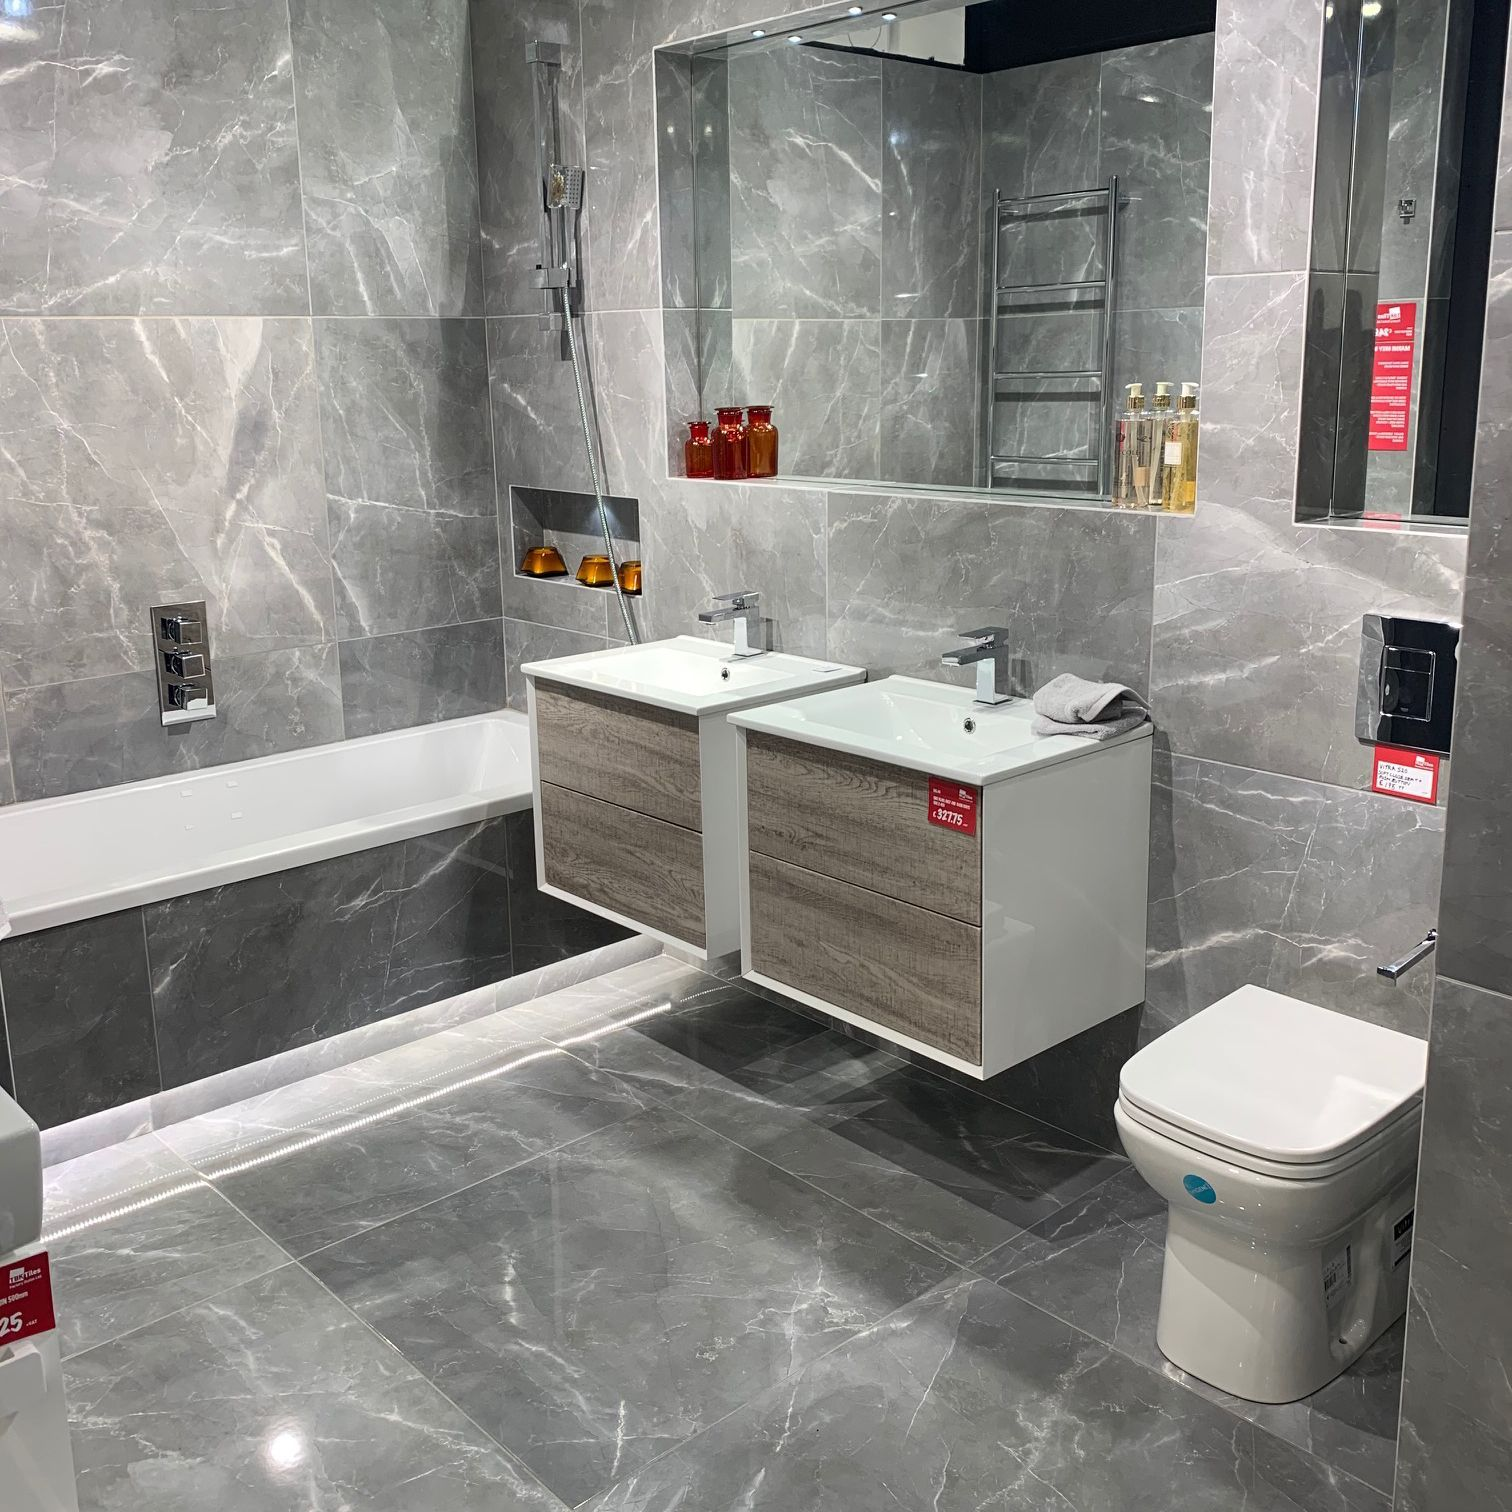 Our New Year Sale Continues With Up To 70 Off Ex Display And Clearance Tiles As Well As Vanity Units Toilets And More Visit Us In 2020 Bathroom Renovation Bathroom